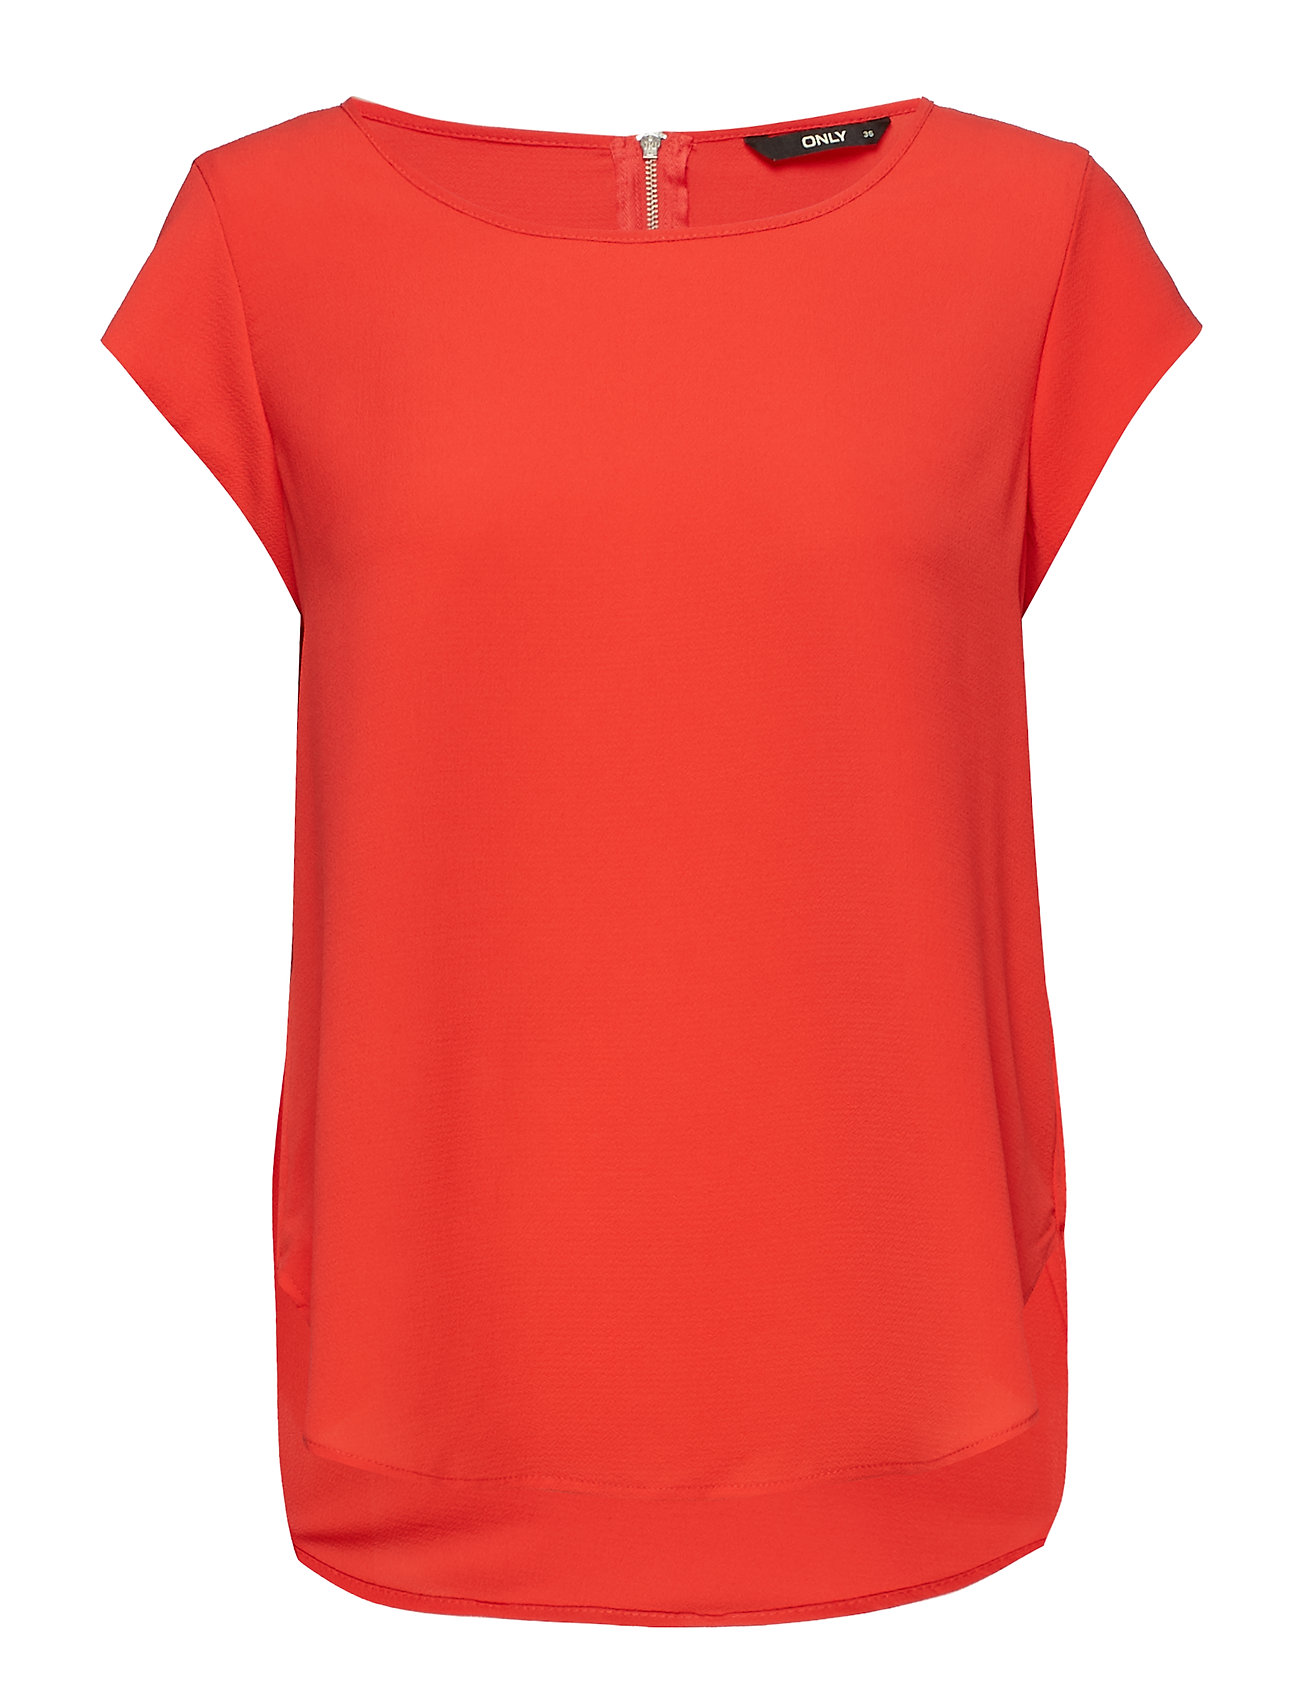 ONLY ONLVIC S/S SOLID TOP NOOS WVN - HIGH RISK RED